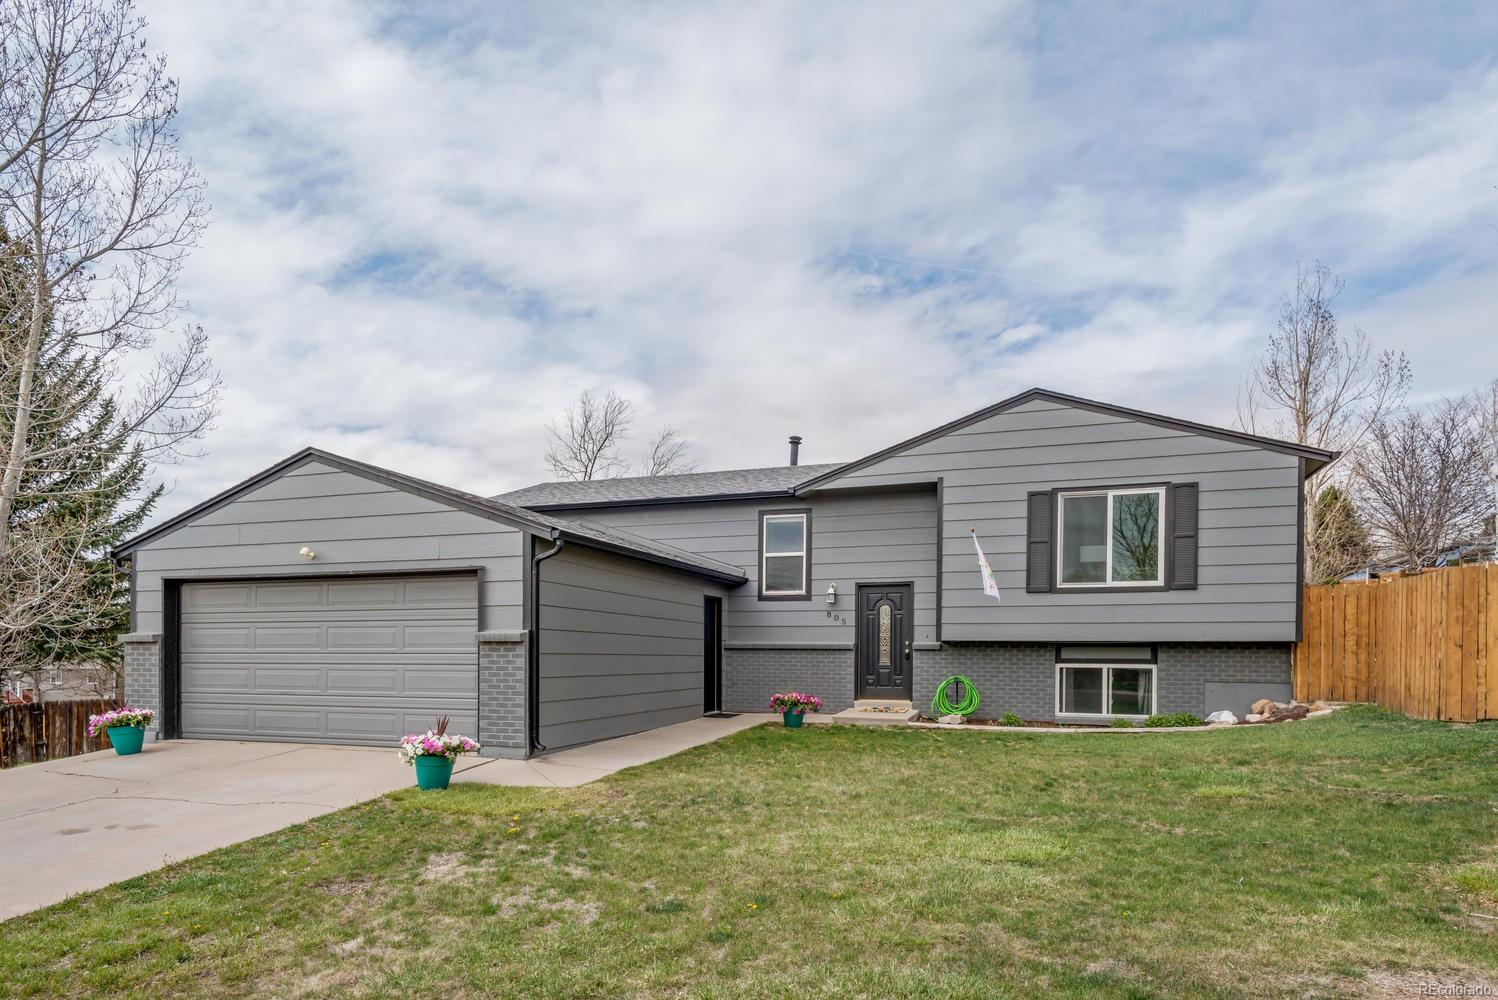 Newer exterior paint and spacious yard with RV parking.